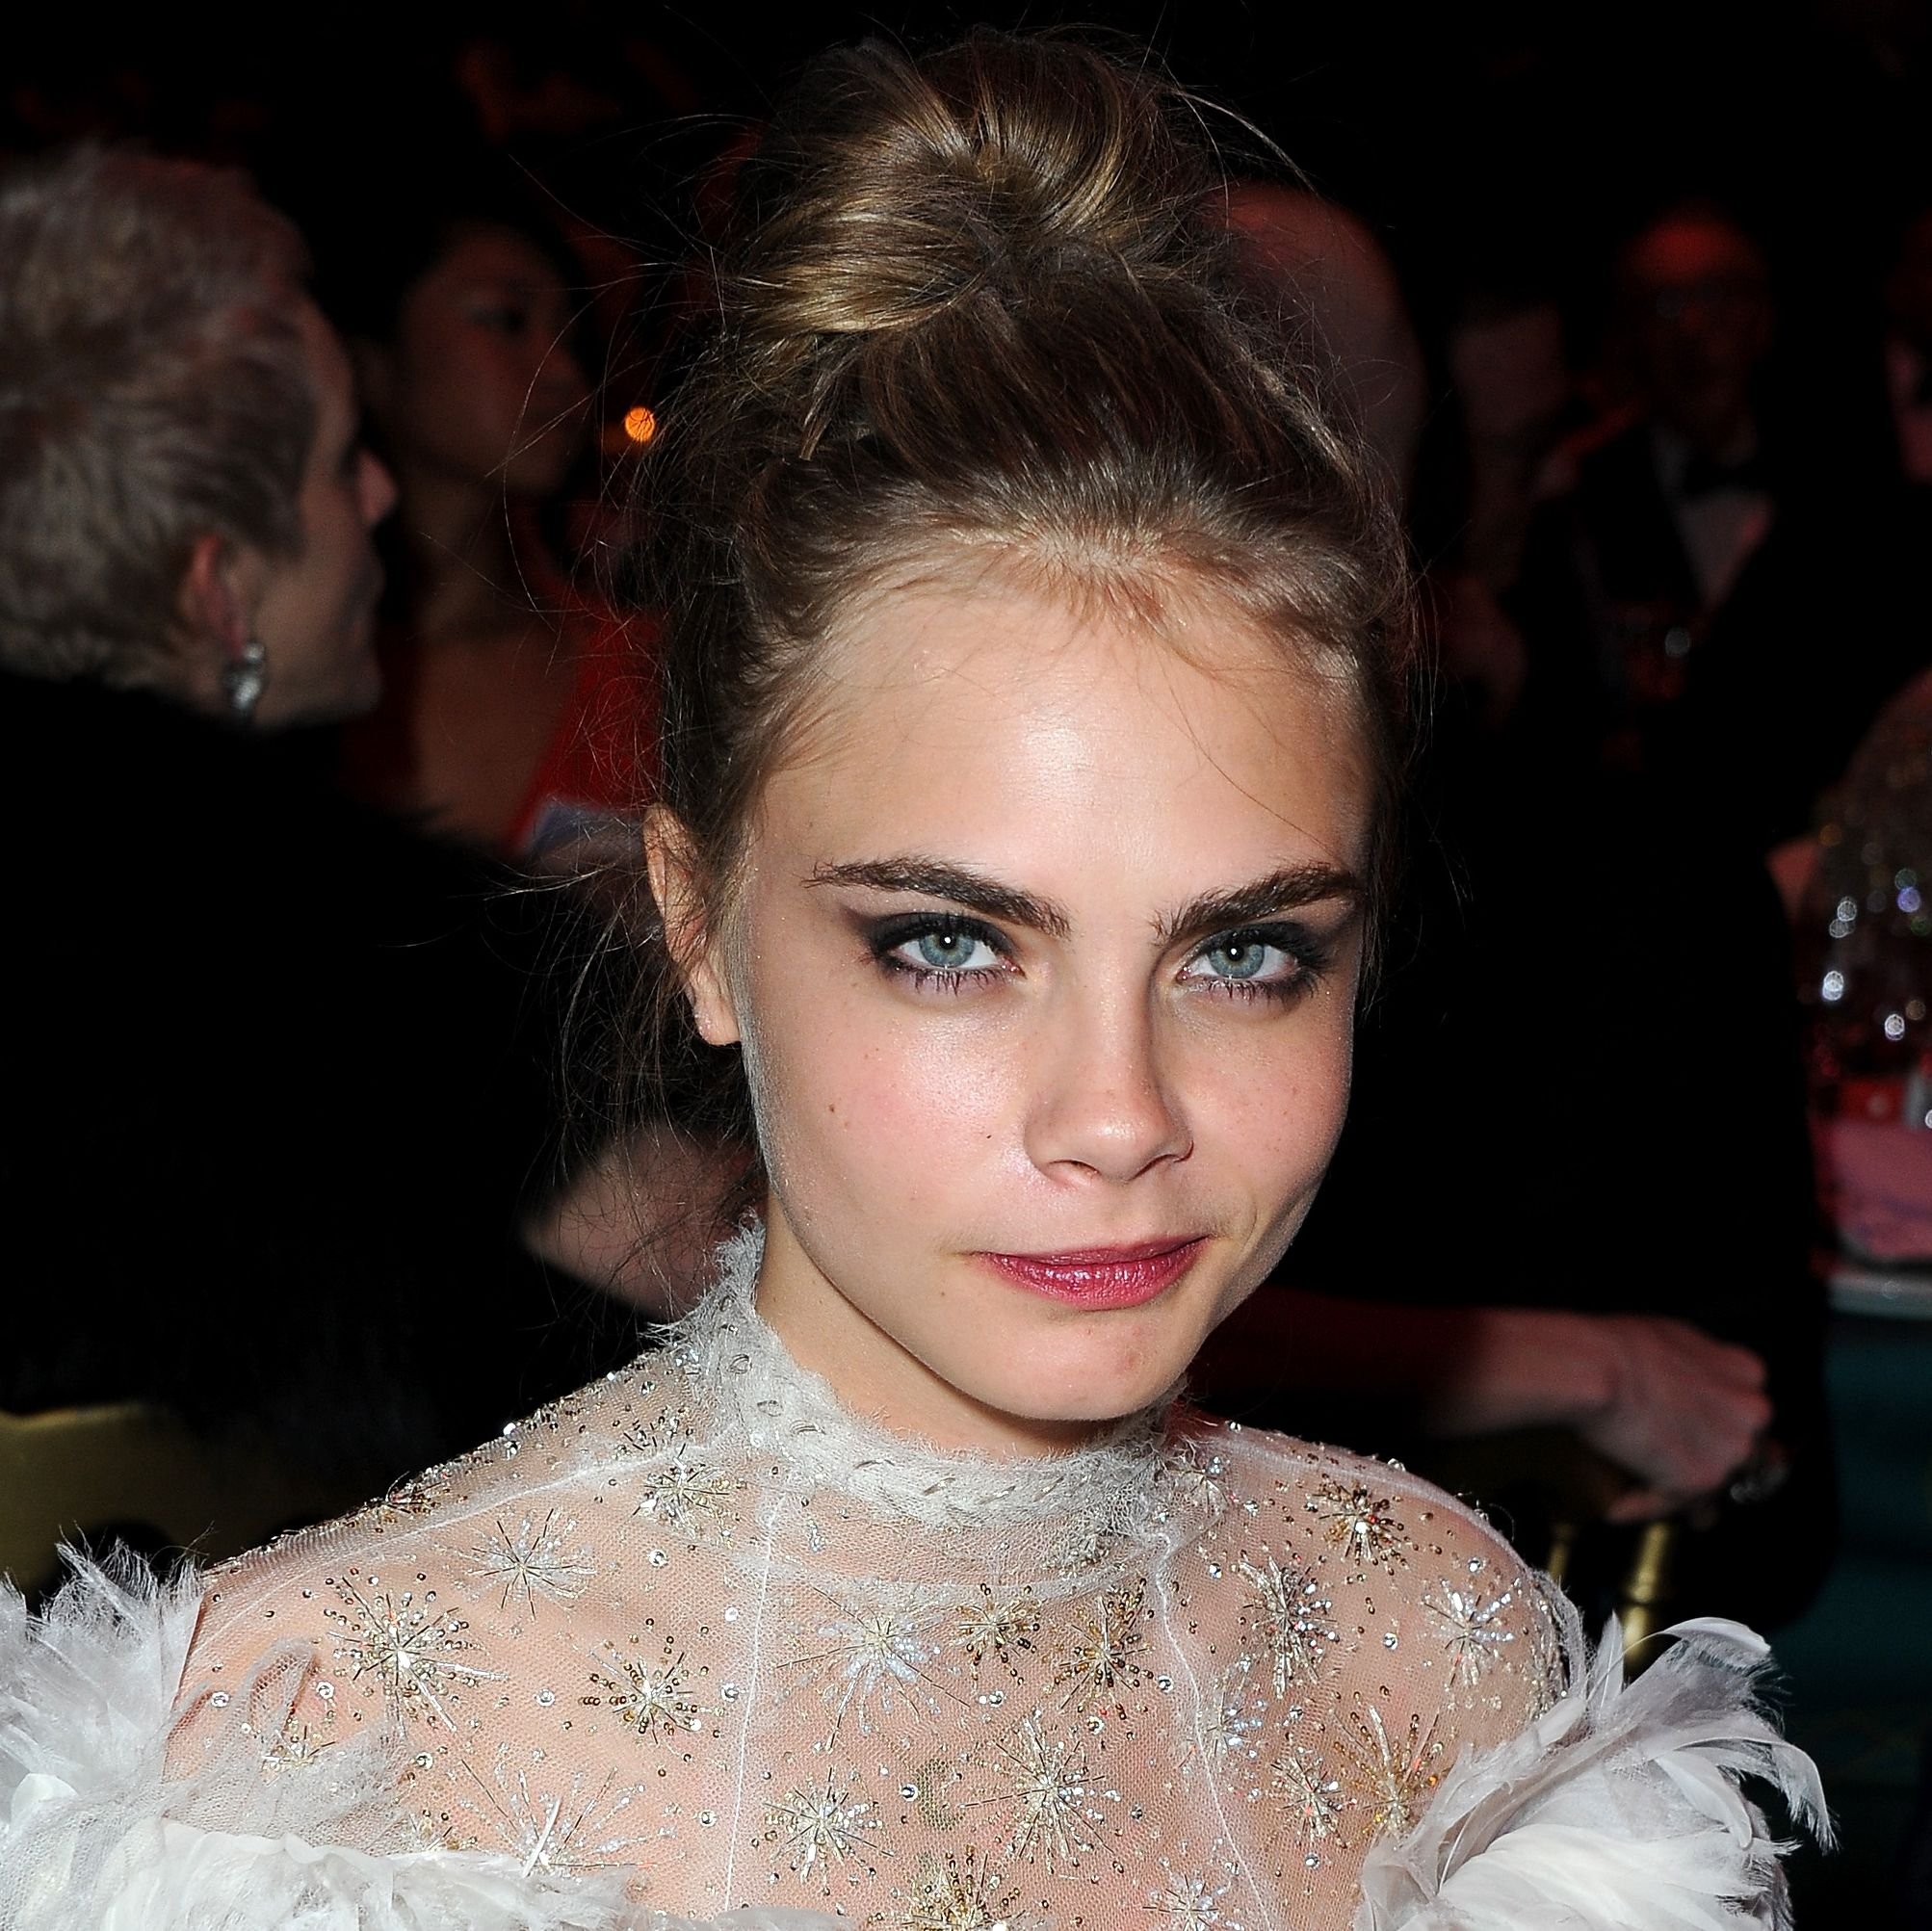 """""""There's something dark within me I cannot shake."""" Cara Delevingne told The Guardian in September 2017 that becoming a famous model hasn't magically made her depression disappear."""